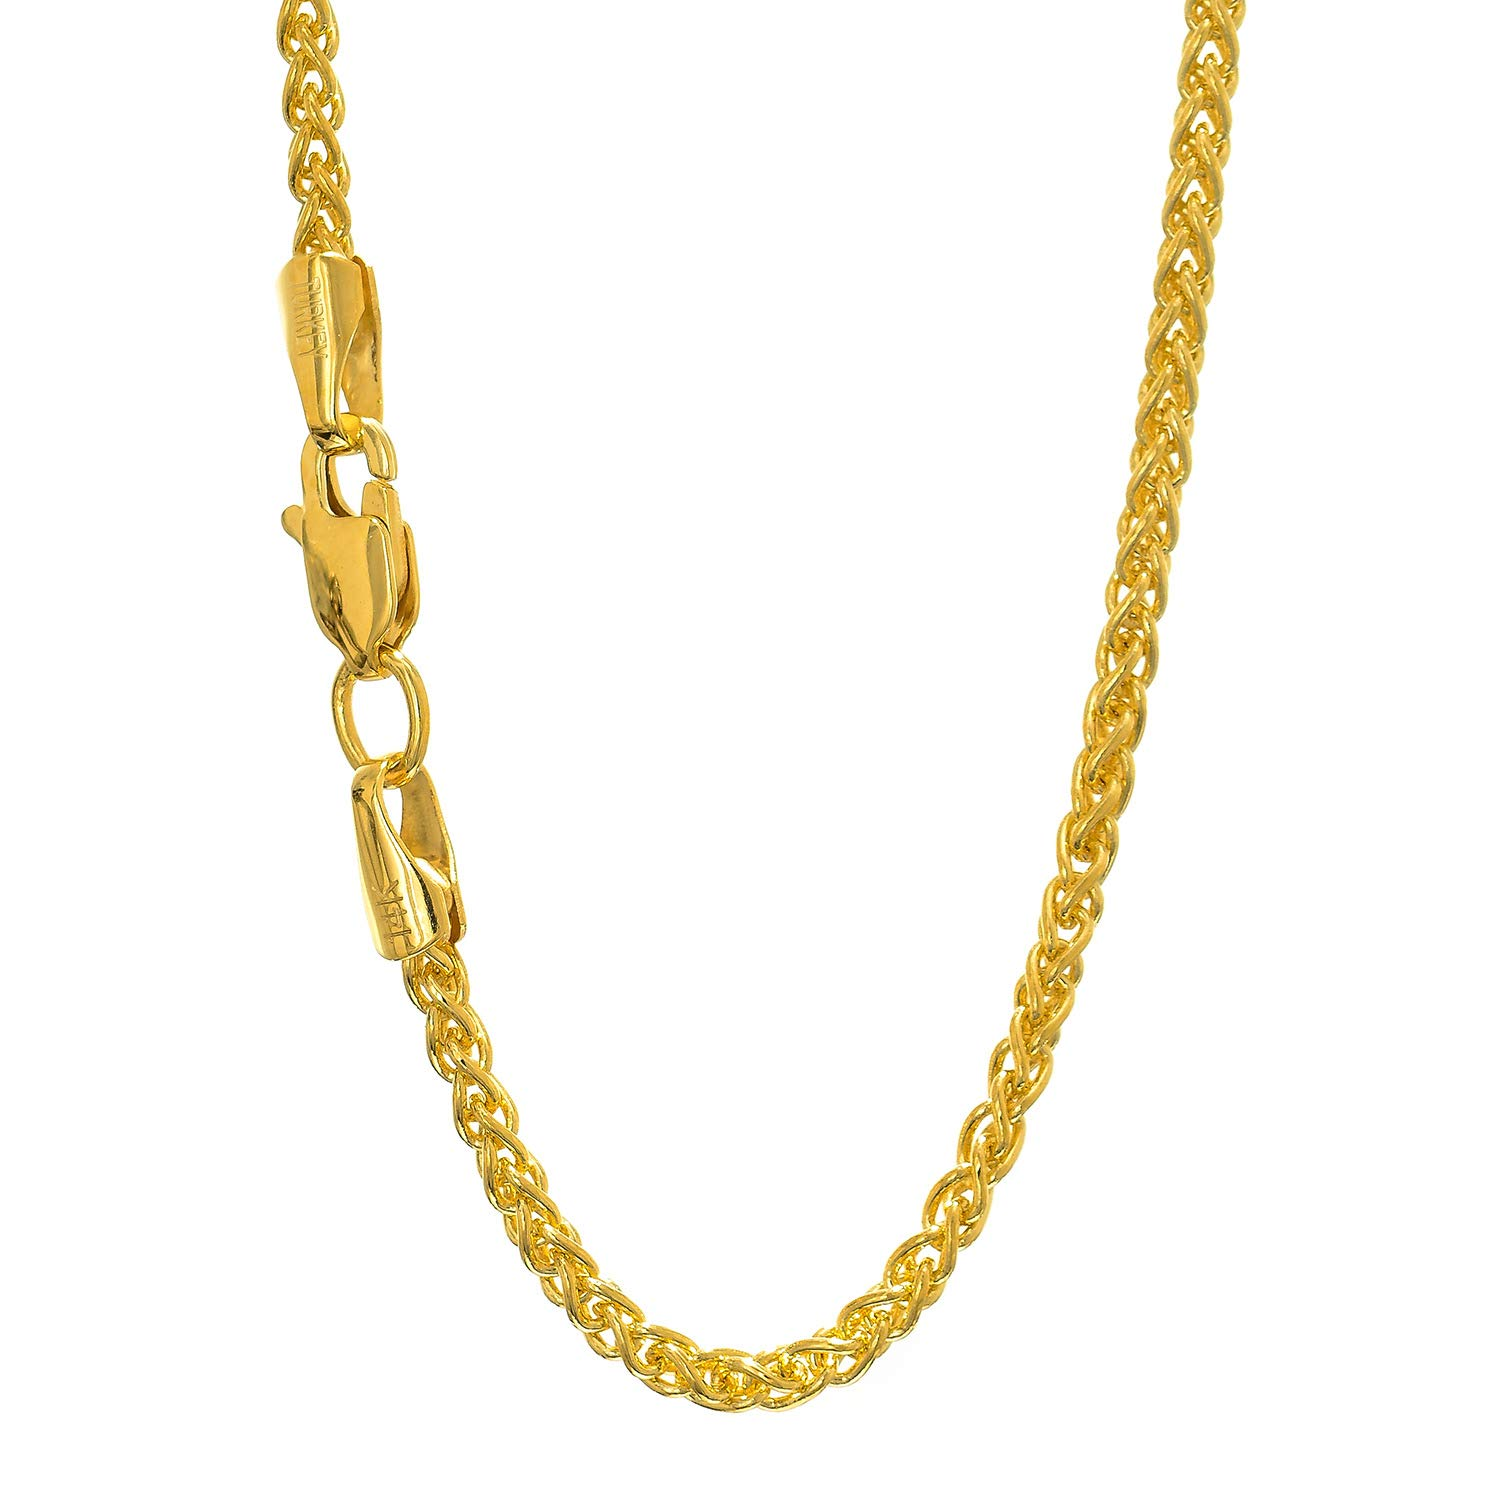 JewelStop 14k Solid Yellow Gold 1.5 mm Round Spiga Wheat Chain Necklace, Lobster Claw Clasp - 30'', 8gr. by JewelStop (Image #1)